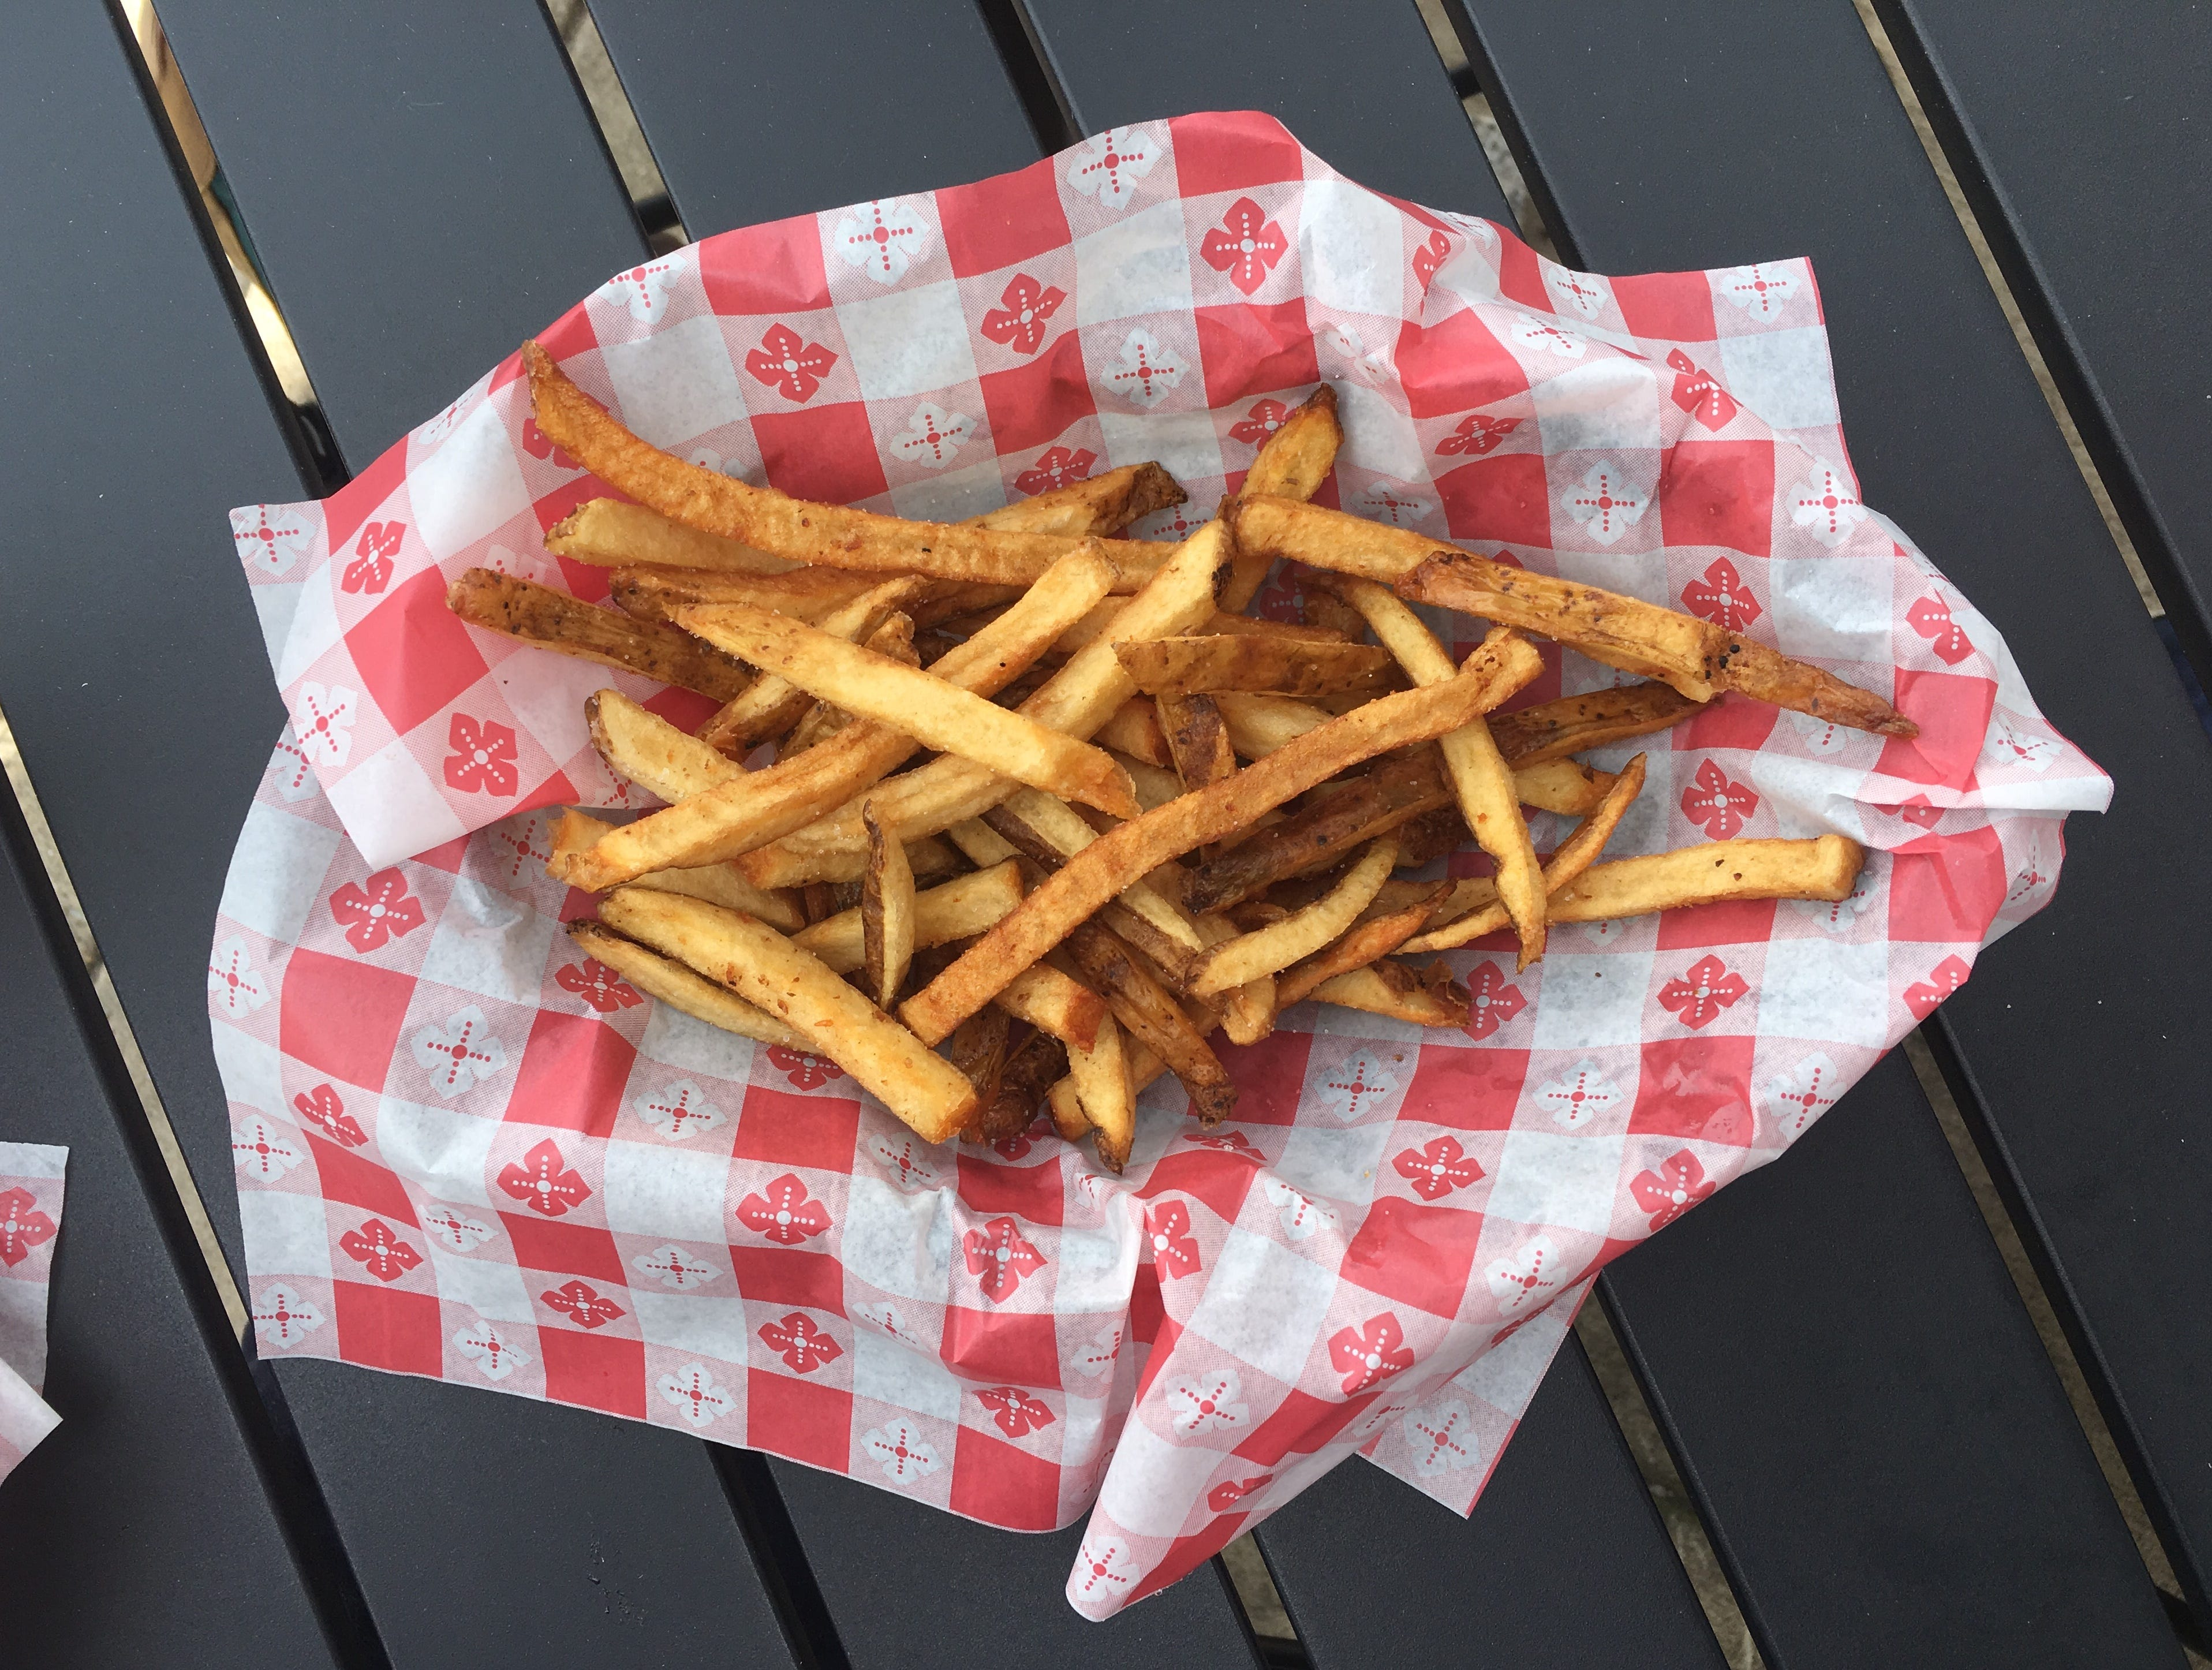 French fries at Nicky's